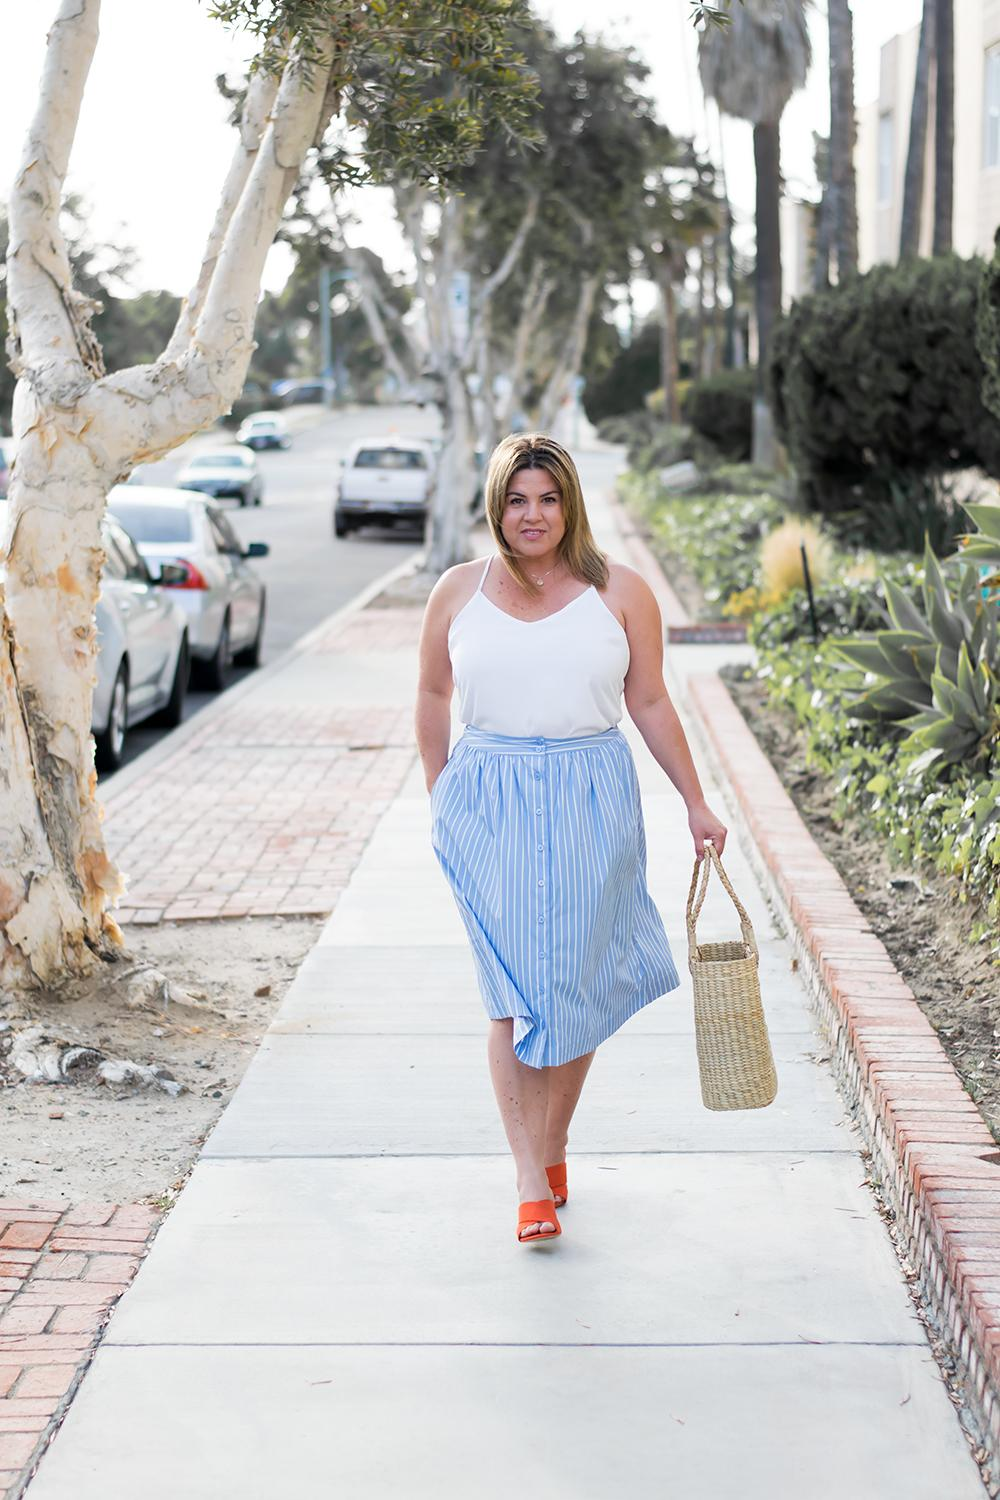 Buttoned-Midi-Skirts-and-Colorful-Mules-Top-Blogger-Outfits-for-2017-Barefoot-in-LA-Fashion-Blog-Style-Ideas_1027